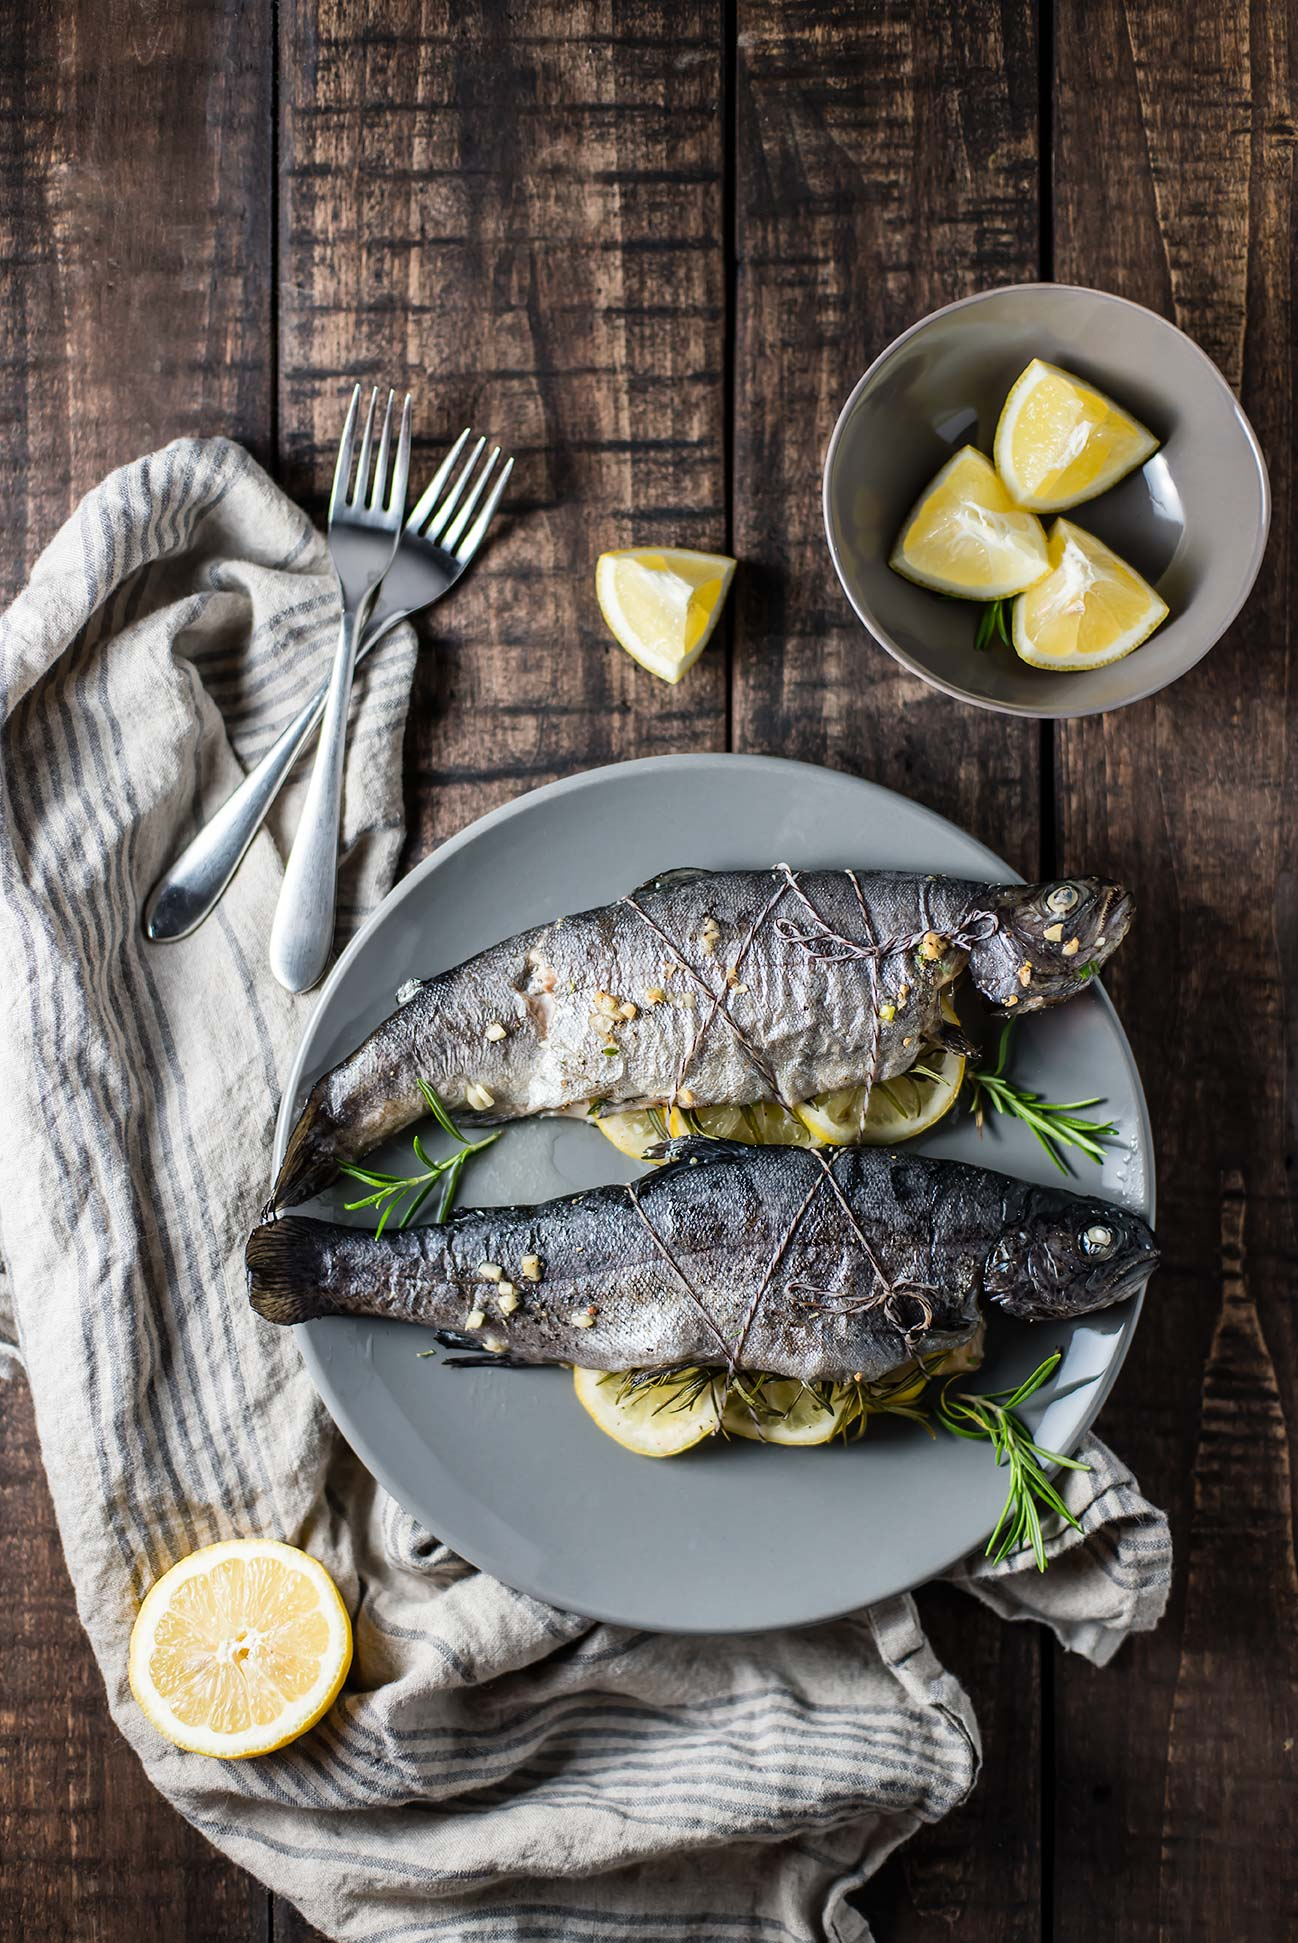 Pan Roasted Trout with Lemon & Rosemary